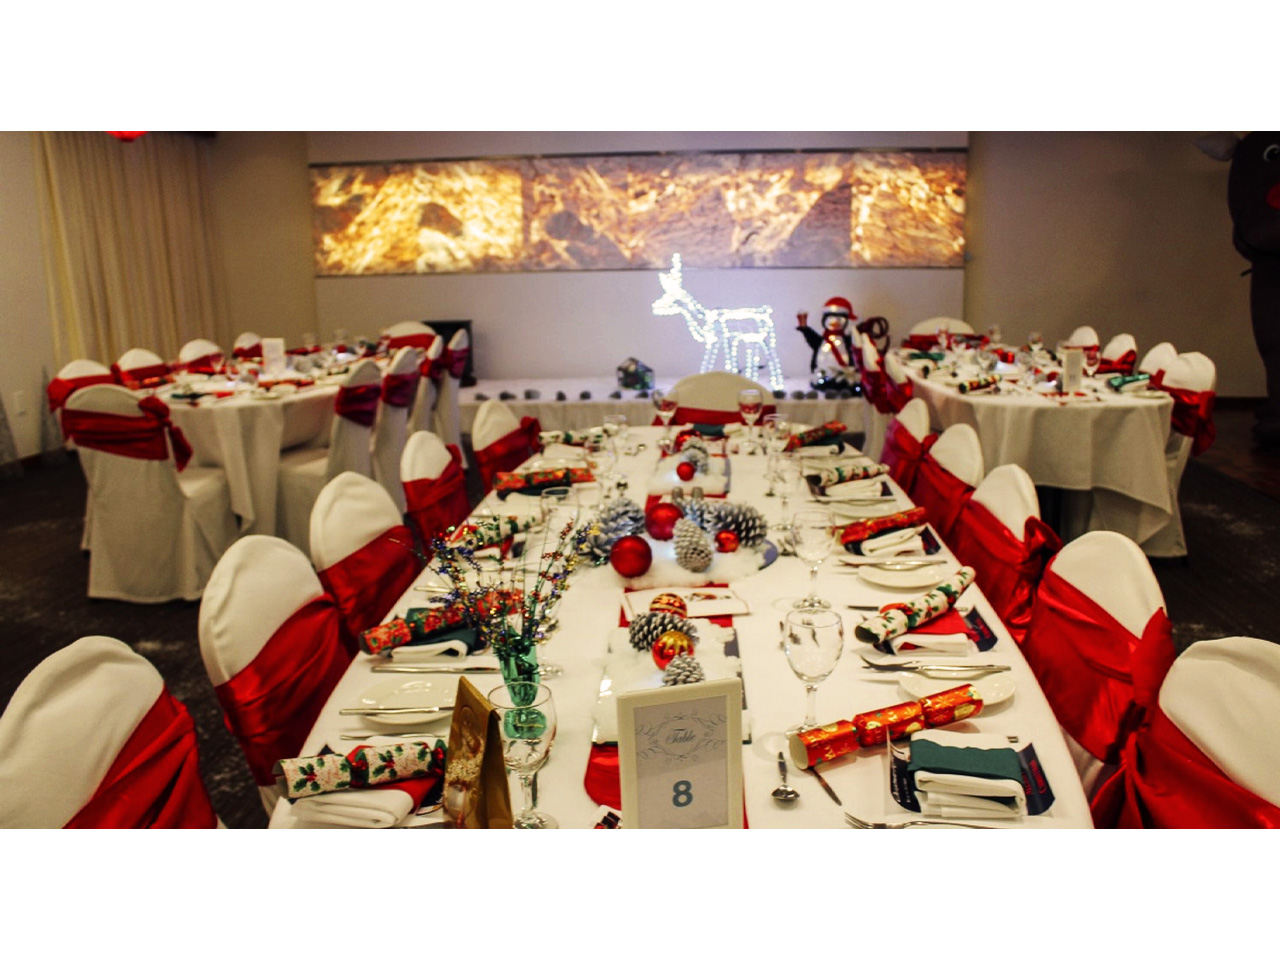 Red and white chairs at long white tables